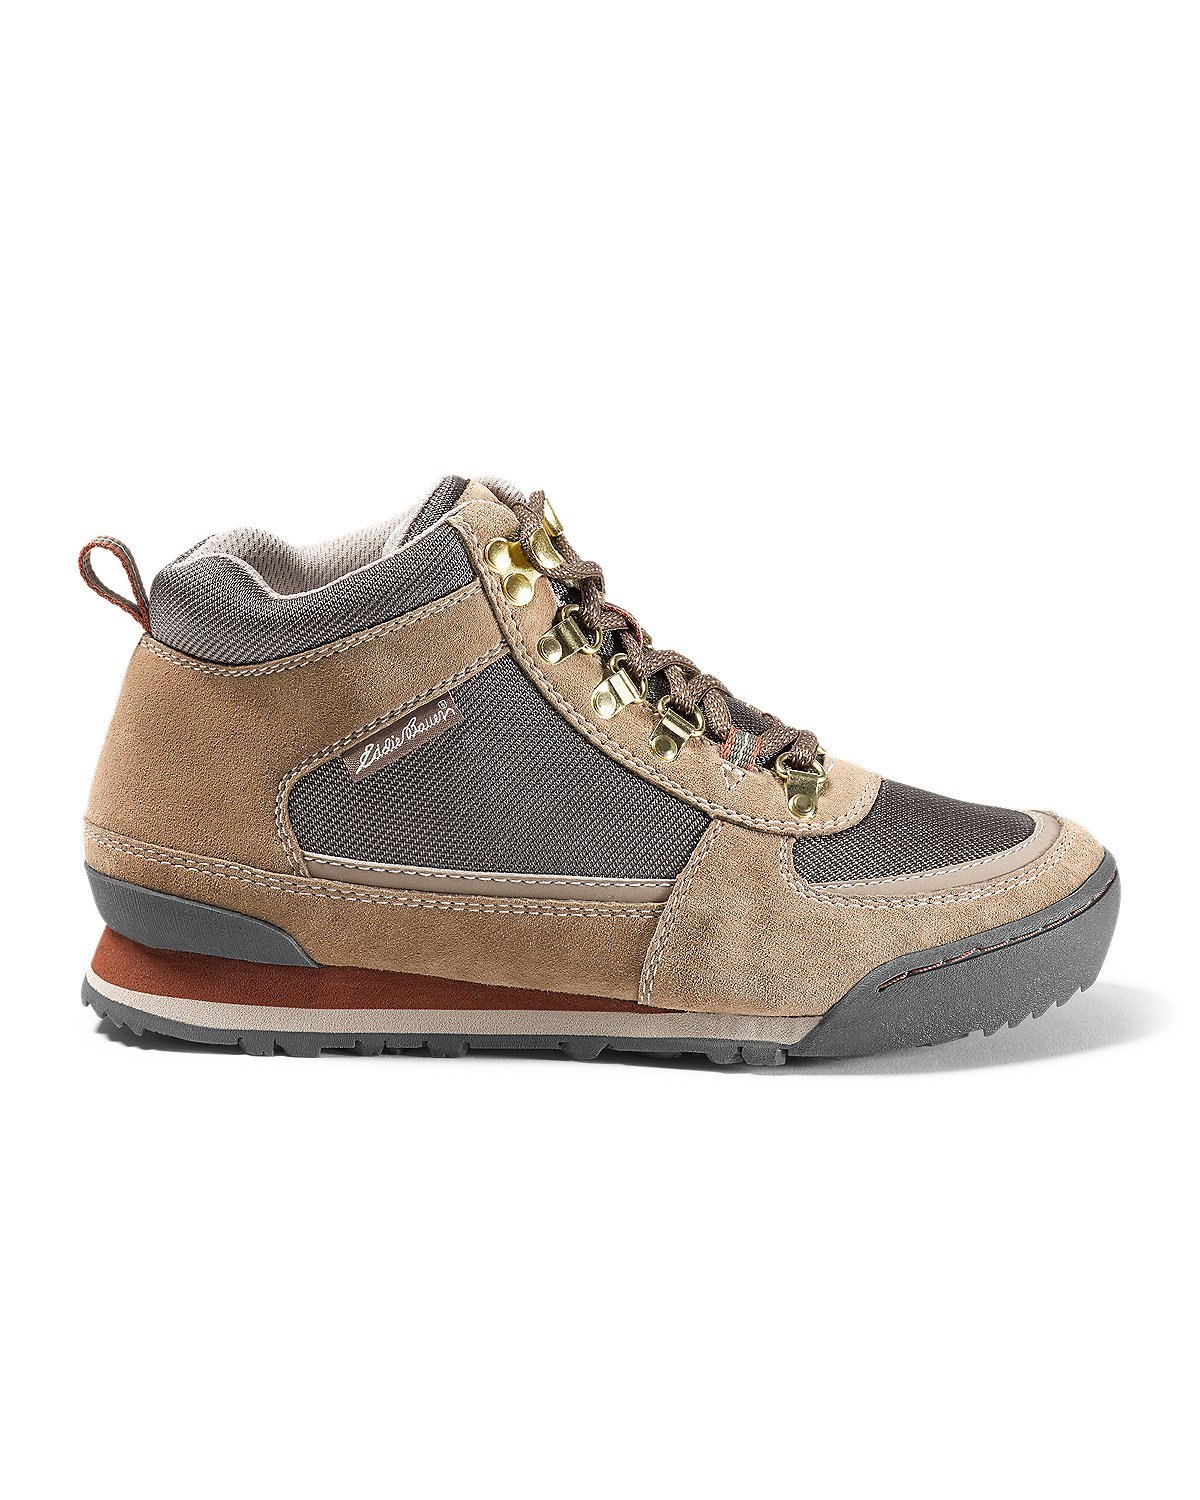 Eddie Bauer Women's Highland Sneakerboot B072QR783H 8 B(M) US|Cinder (Grey)